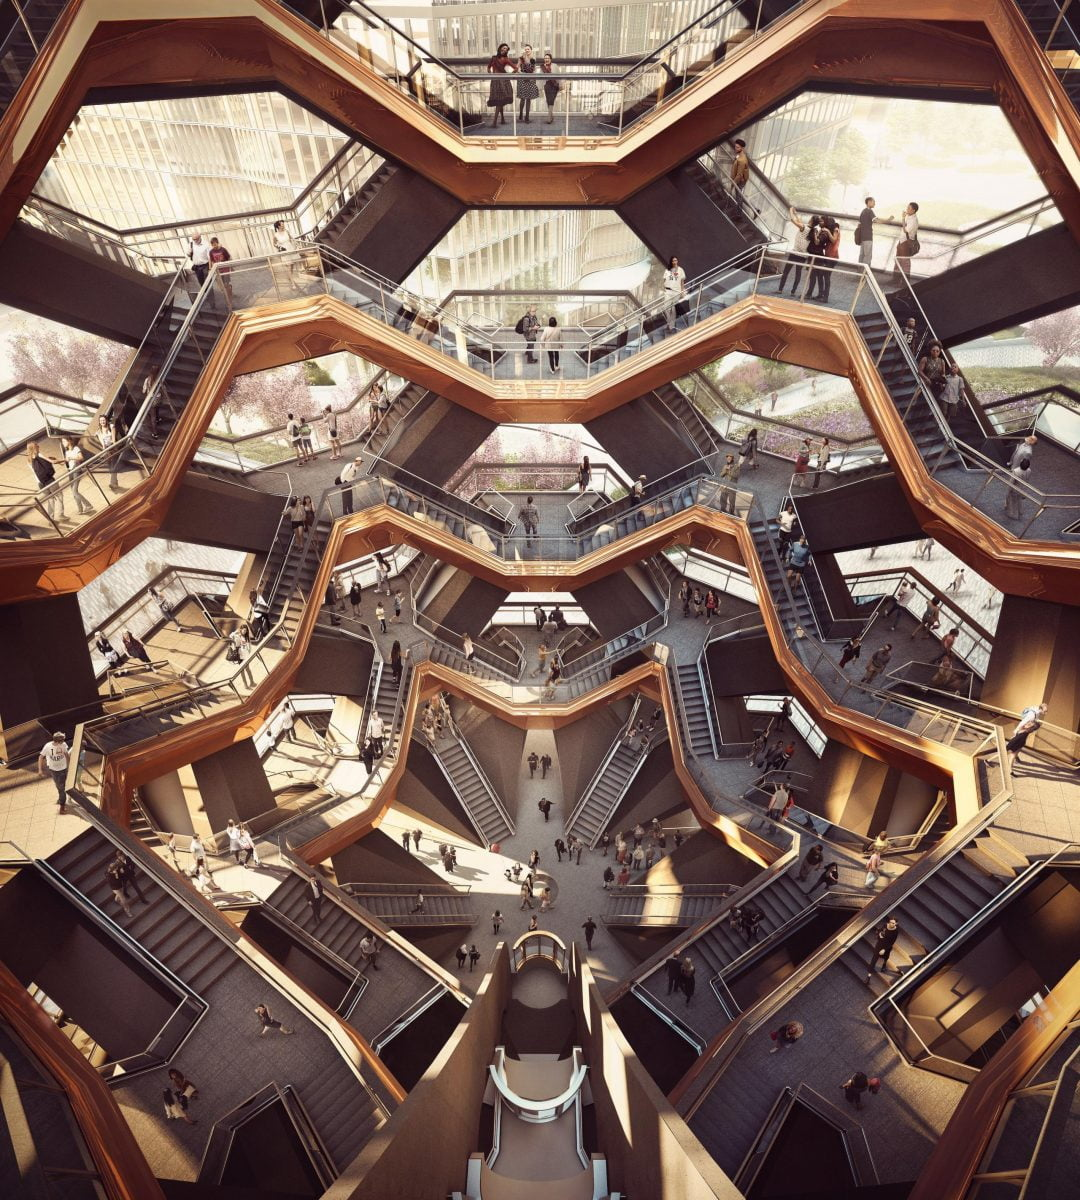 Shop Ladies and Gents Hudson Yards Interior View of the Vessel Courtesy of Forbes Massie Heatherwick Studio